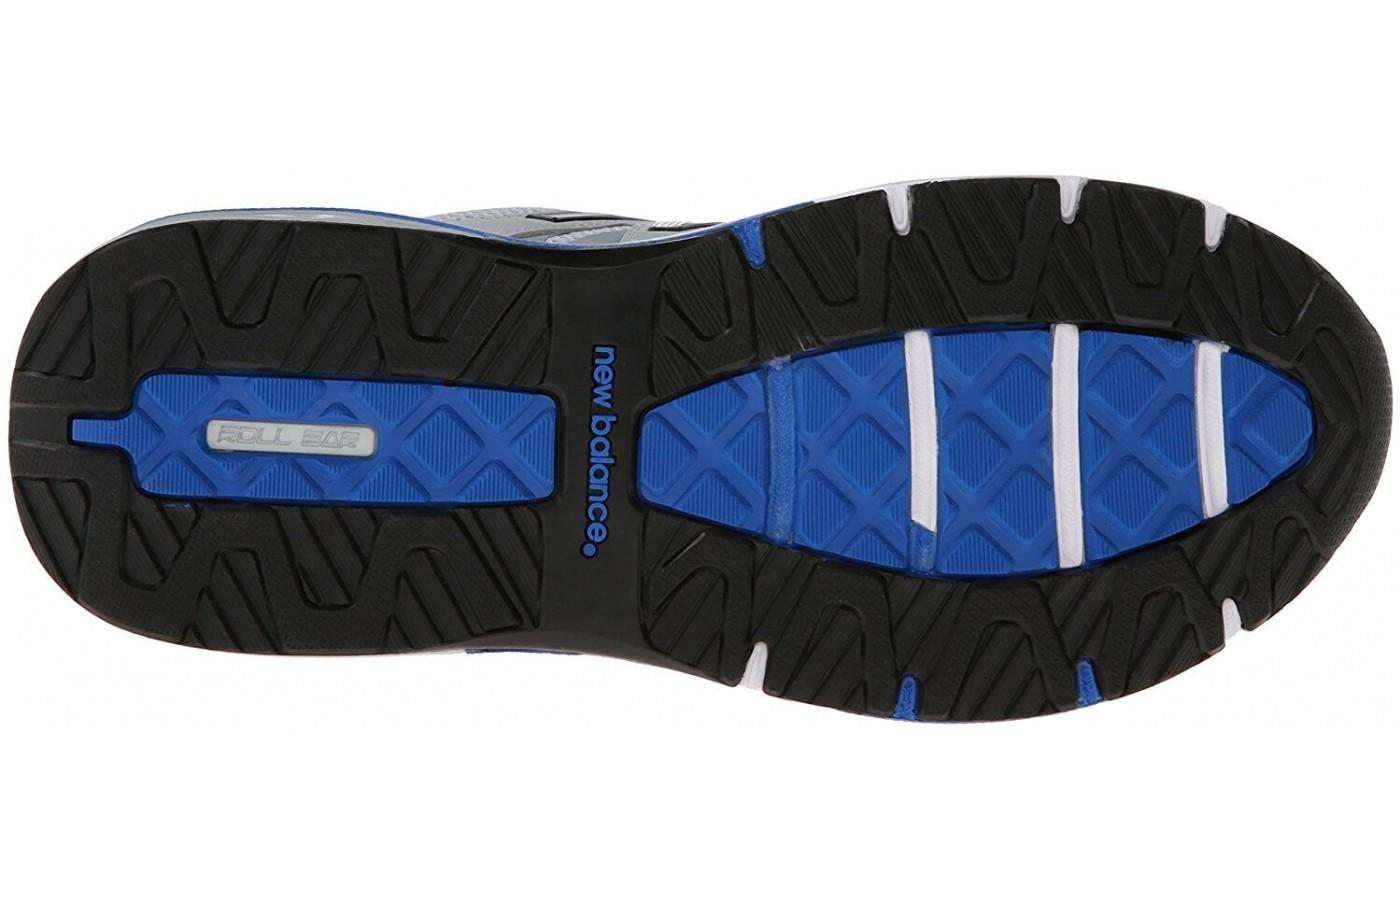 ... the outsole of the New Balance 1540 v2 uses blown rubber for traction  and NDurance rubber ...